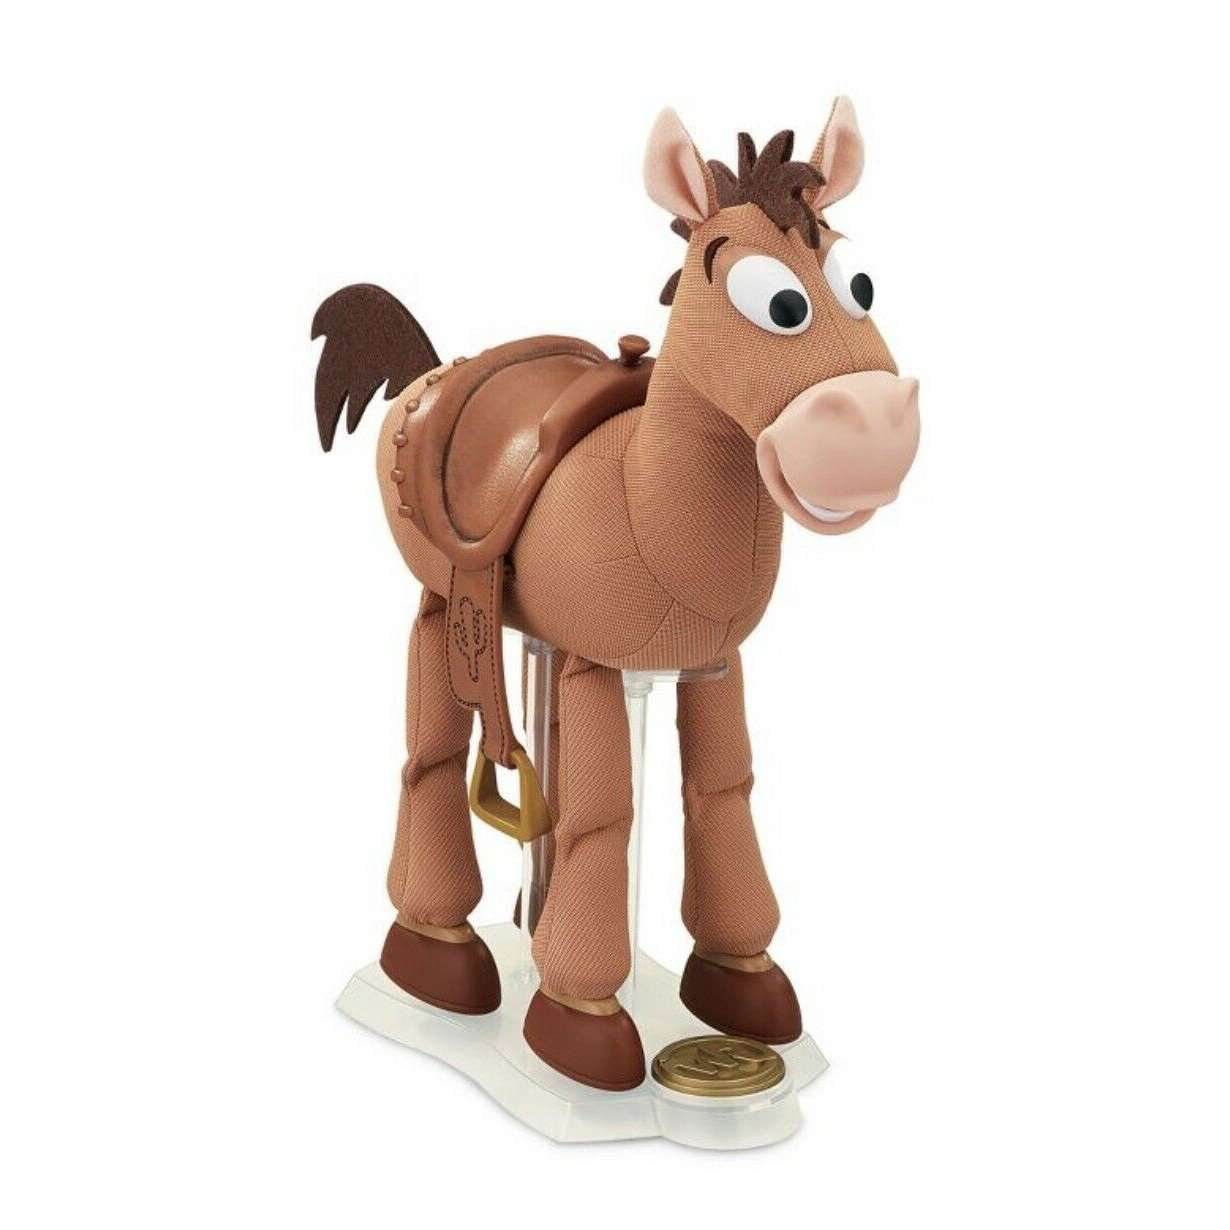 Signature Collection: Toy Story - Woody's Horse Bullseye Photo